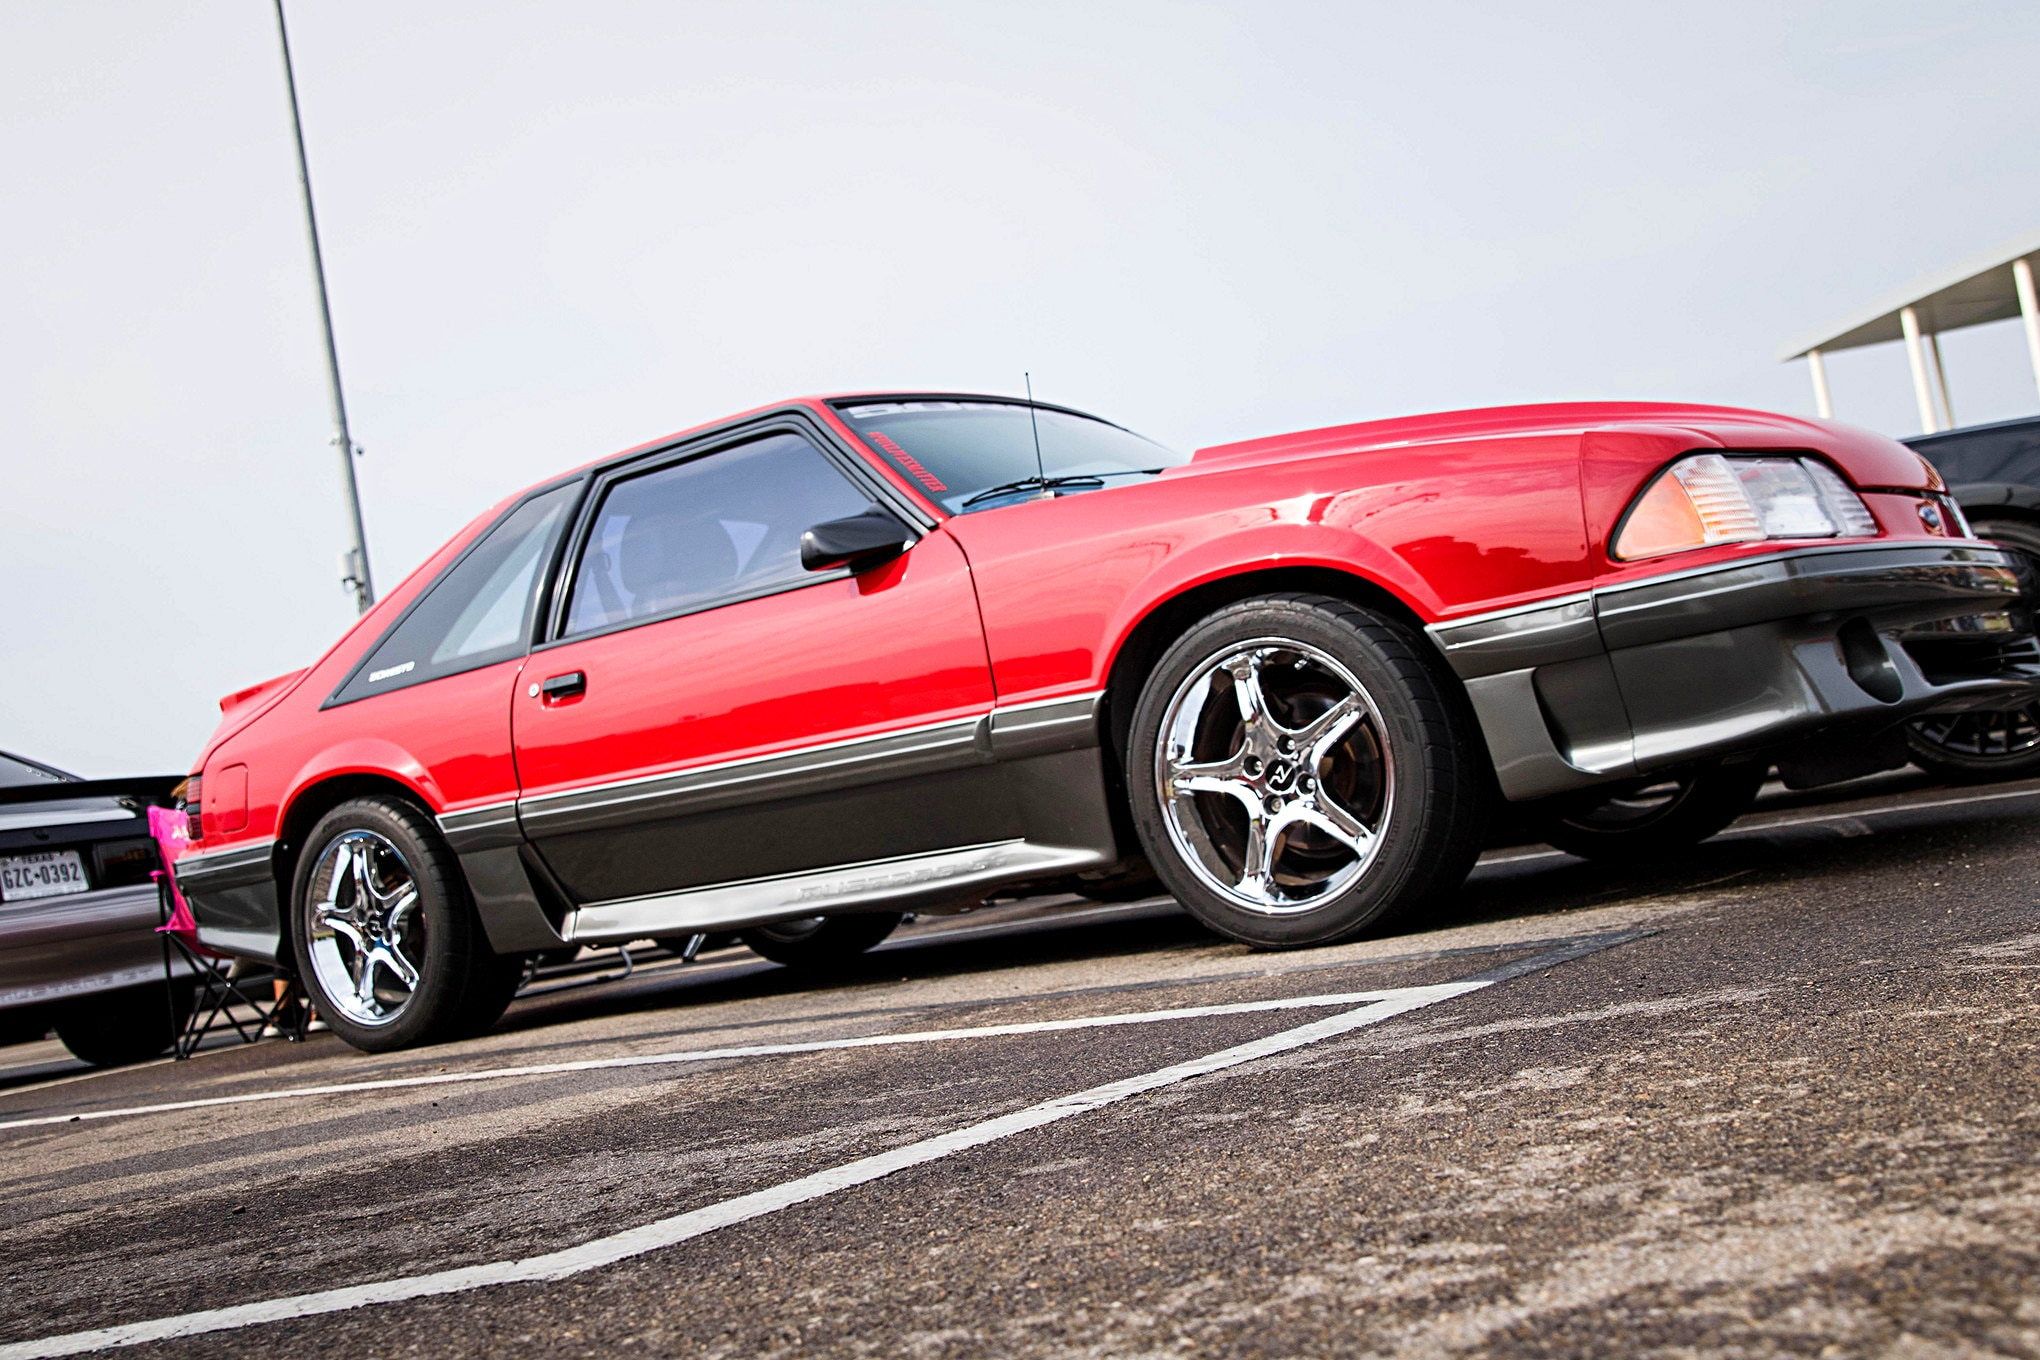 2016 Lmr Cruise In Mustangs 064 - Photo 126115249 - LMR Hosts a Monster Event At This Year's ...